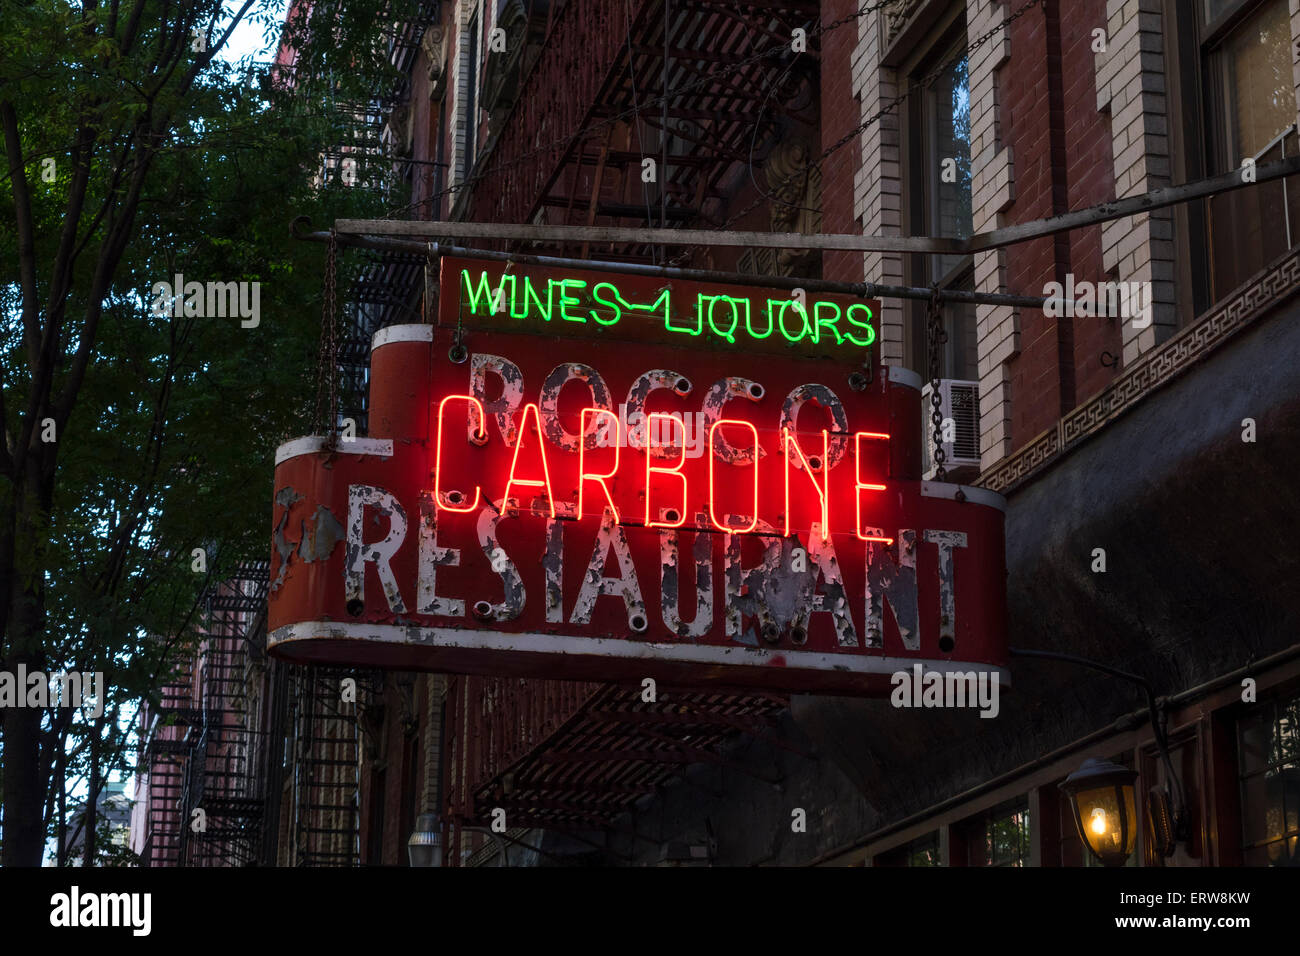 Neon sign outside Carbone, a high-end Italian restaurant in Greenwich Village in New York City - Stock Image